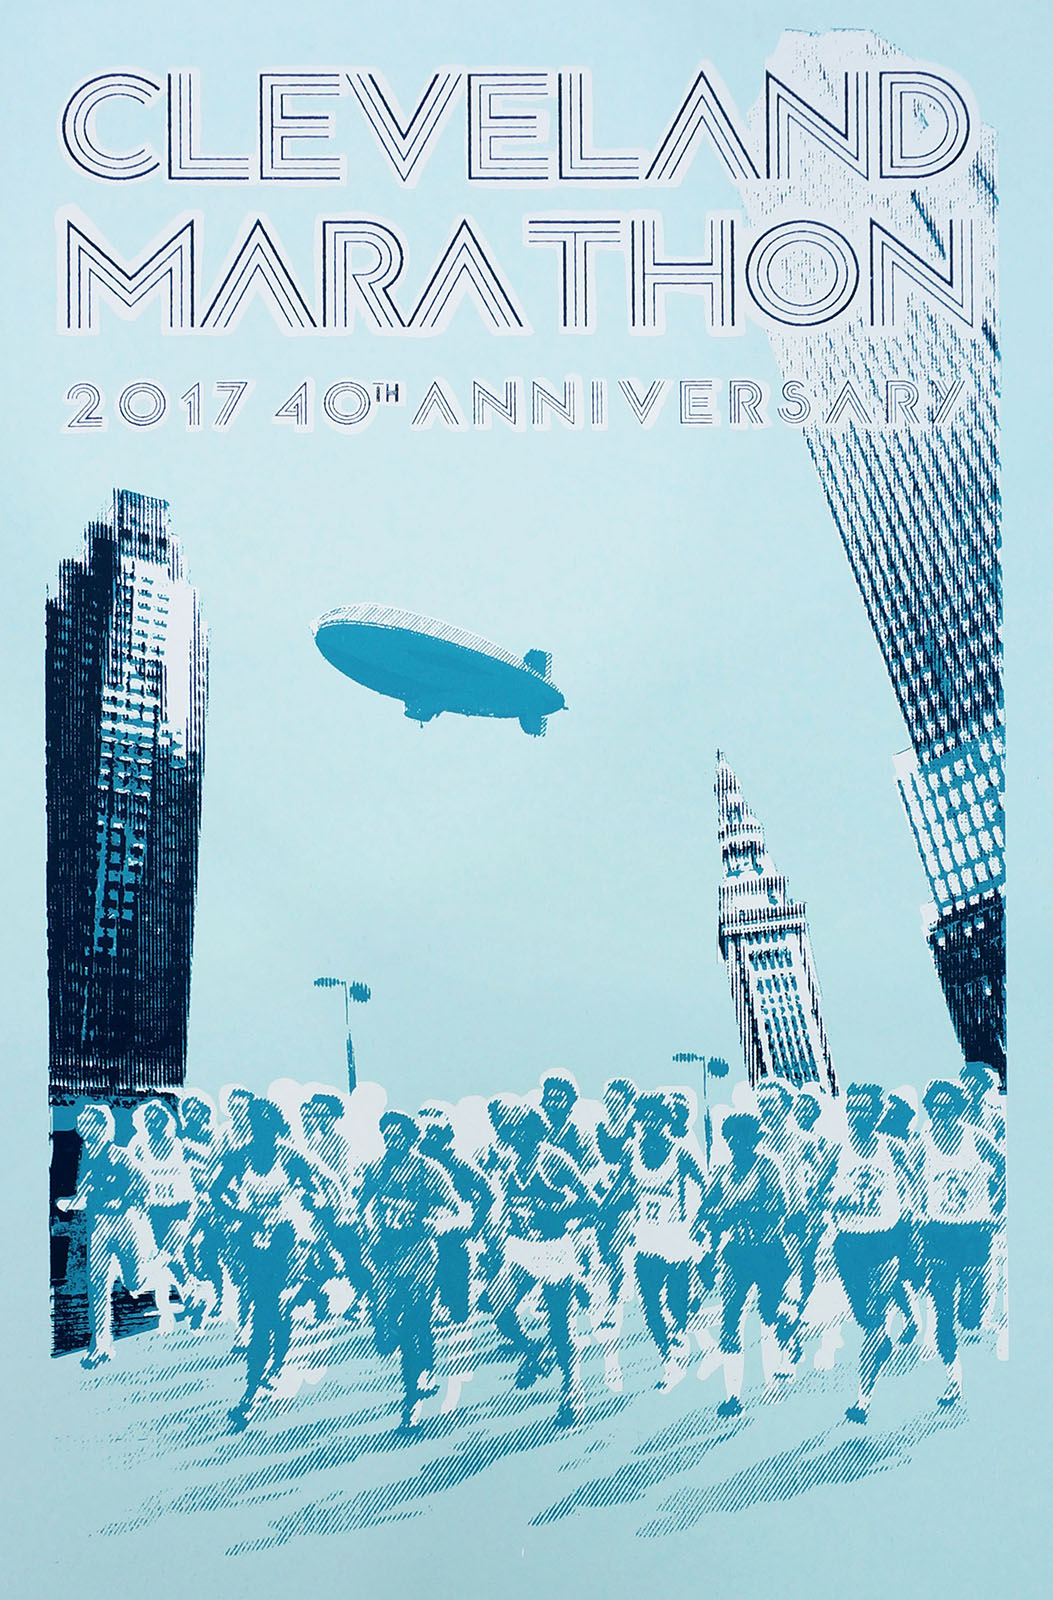 - I used a photograph of Cleveland Marathon runners from that era, provided by the organizers – combined with one of my own more recent featuring the Terminal Tower, Key Center, and the Huntington (old BP) Building. These photos were bitmapped to give the feel of a 1970s newspaper clipping / xerox / mimeograph and coupled with a retro font. 1970s teal ink was used with Sno-Cone blue paper to mimic the Marathon's colors. Each print was hand printed, signed and numbered.